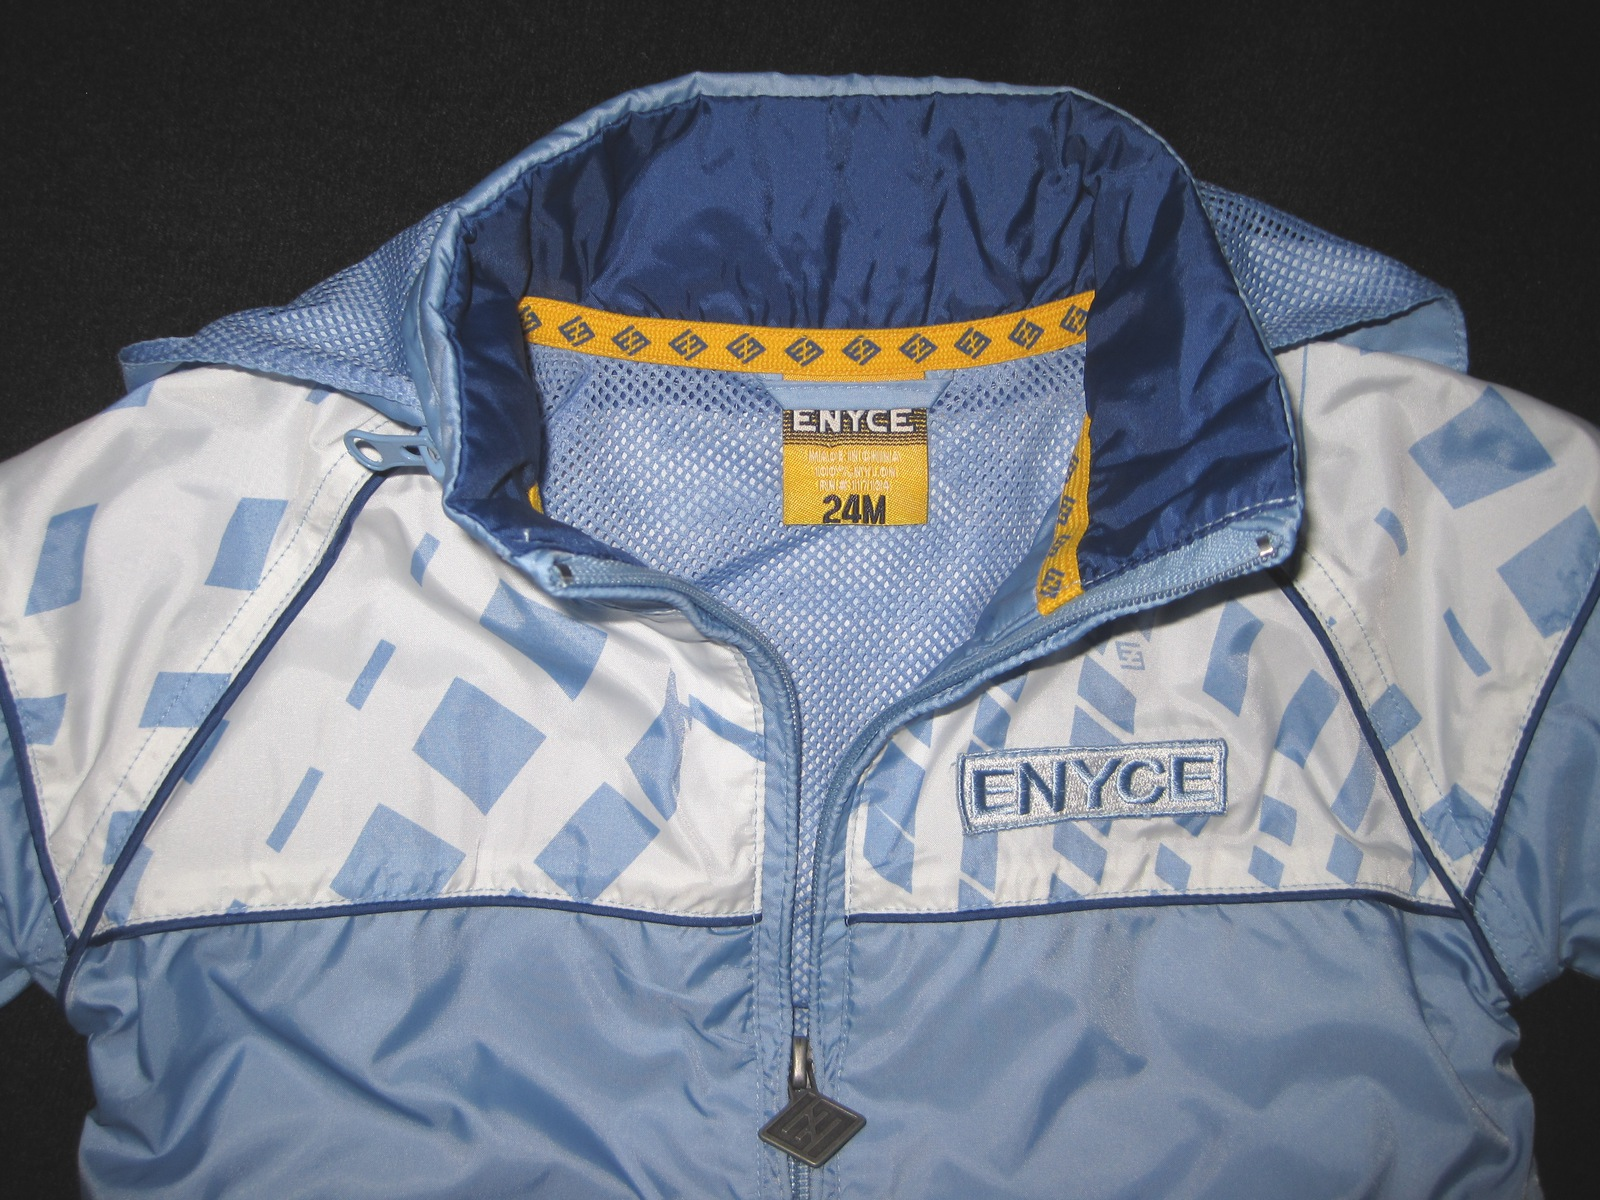 BOYS 24 MONTHS - Enyce - Blue Lined Zippered Hidden Hood Lightweight JACKET